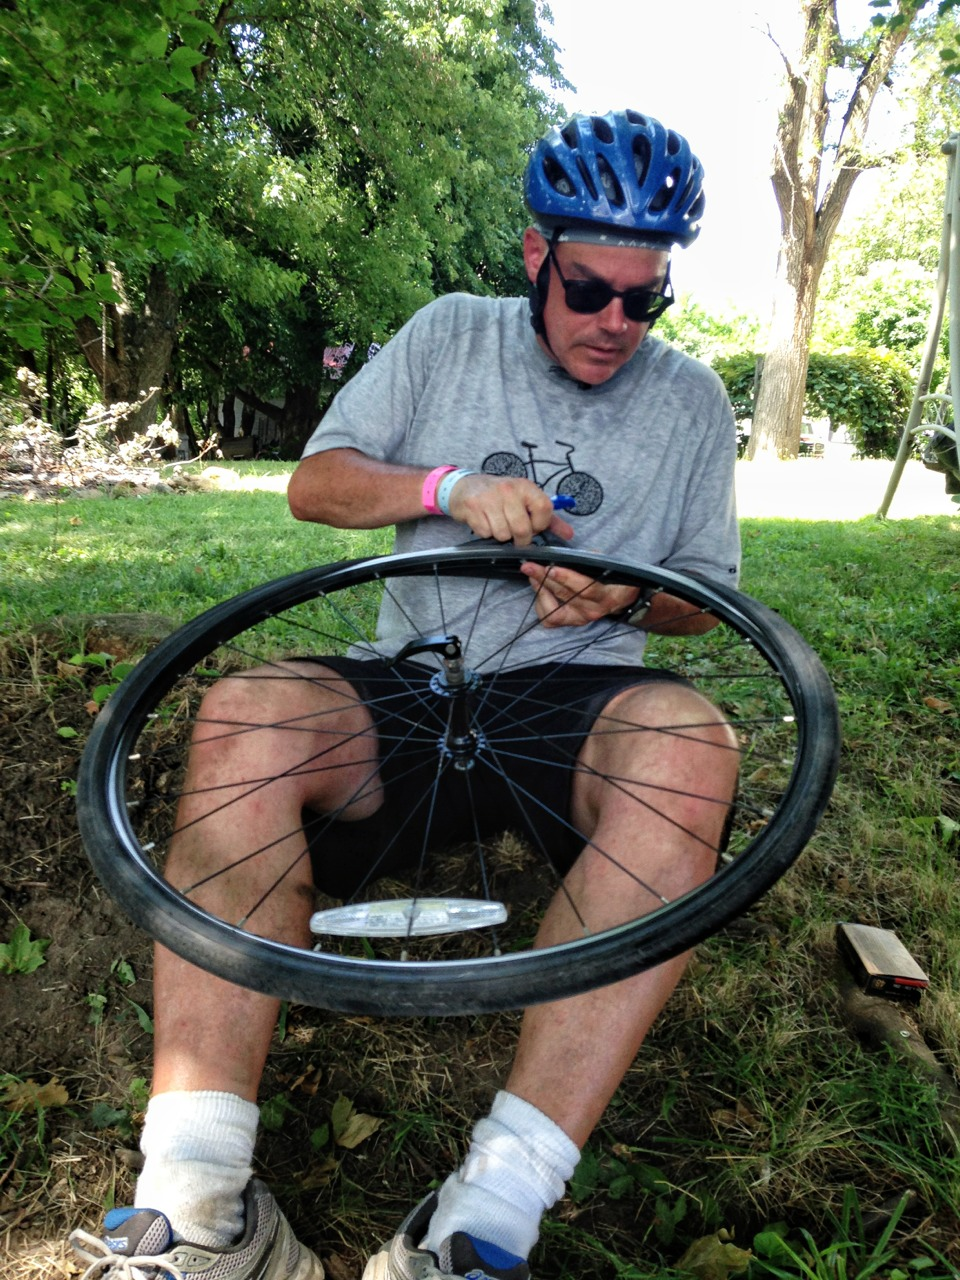 "From tumblr: ""BREAKING NEWS. Horsley flat tire. Happening now! Bussey, IA."" But what caused the mishap? A witness swears that Horsley twitched ever-so-slightly during discussions surrounding the 'lovely bass' that Gonyea contributed to the 'symphony of snoring from surrounding RAGBRAI tents.' Details unconfirmed."